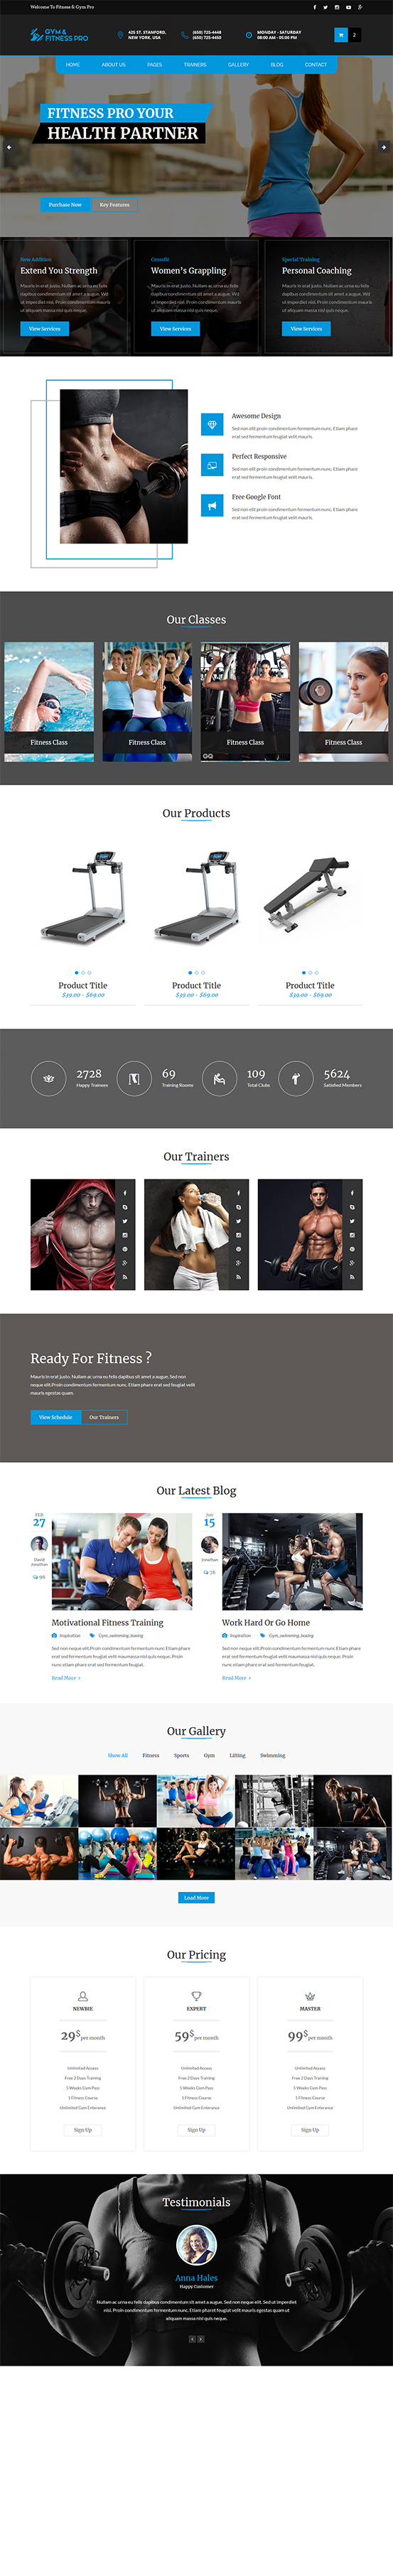 Template Industry - Free Responsive HTML5 CSS3 Themes